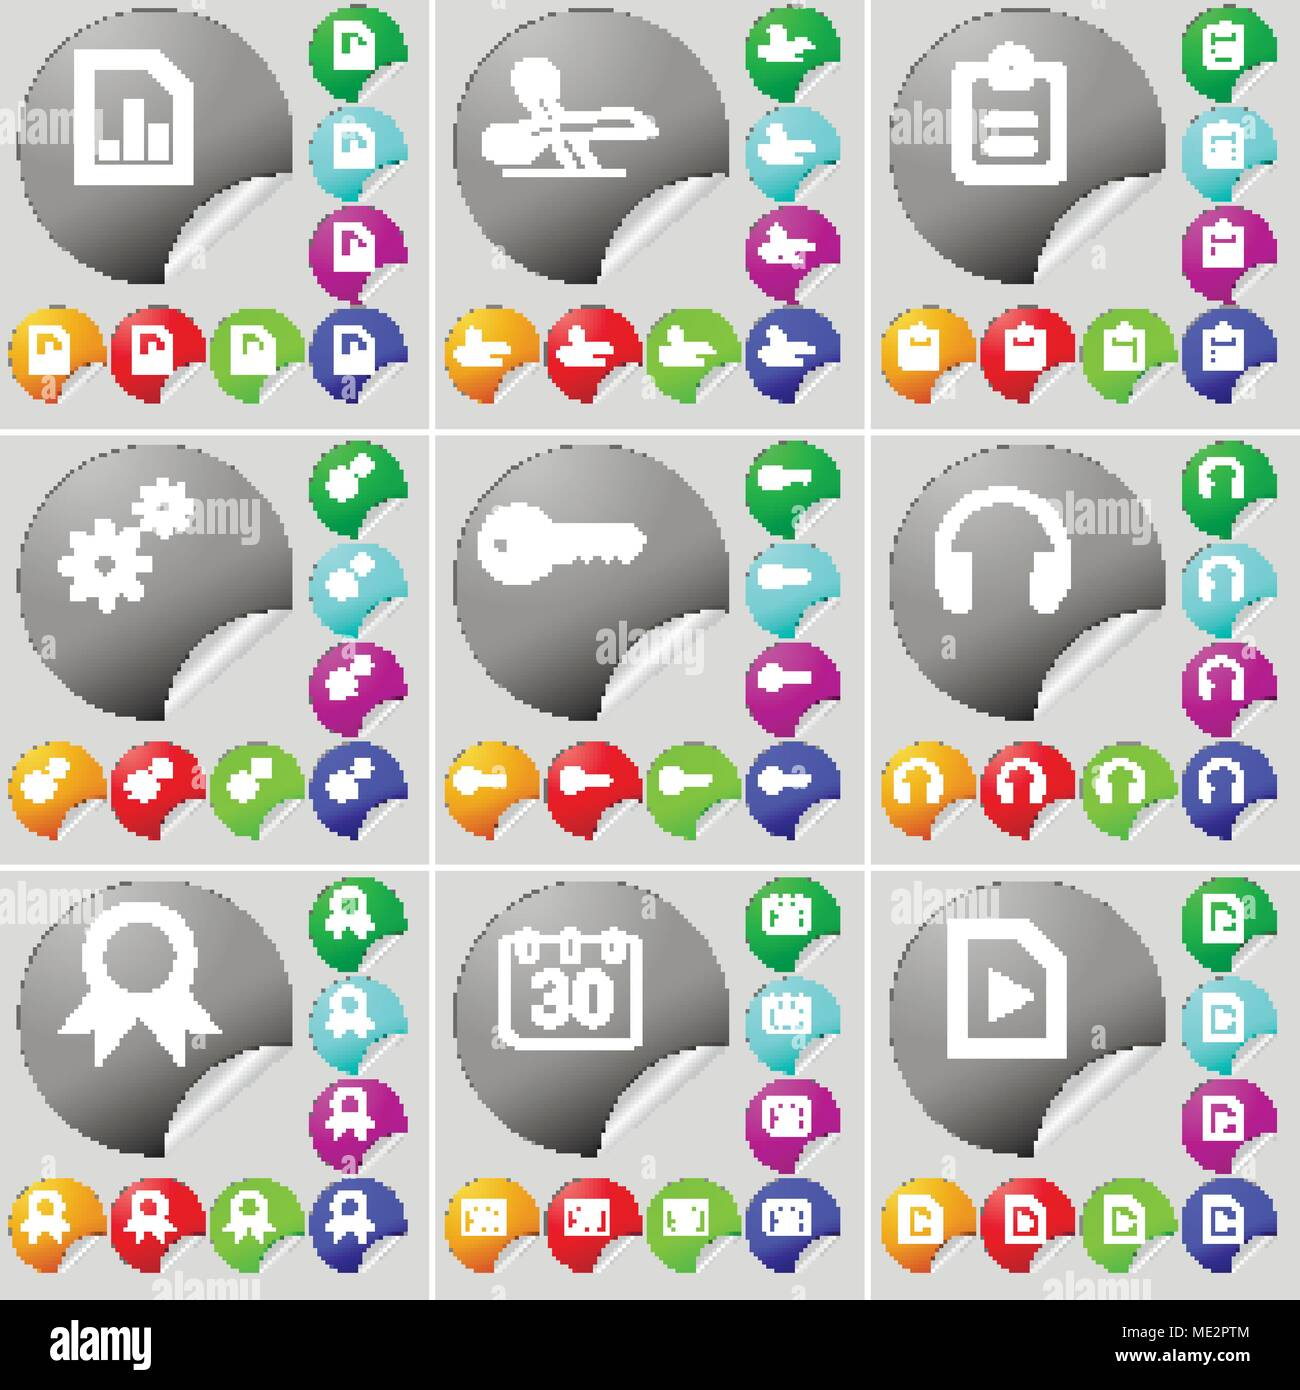 diagram file, scissors, survey, gear, key, headphones, medal, calendar,  media file sign icon  a set of seventy two colorful round buttons,  stickers  v